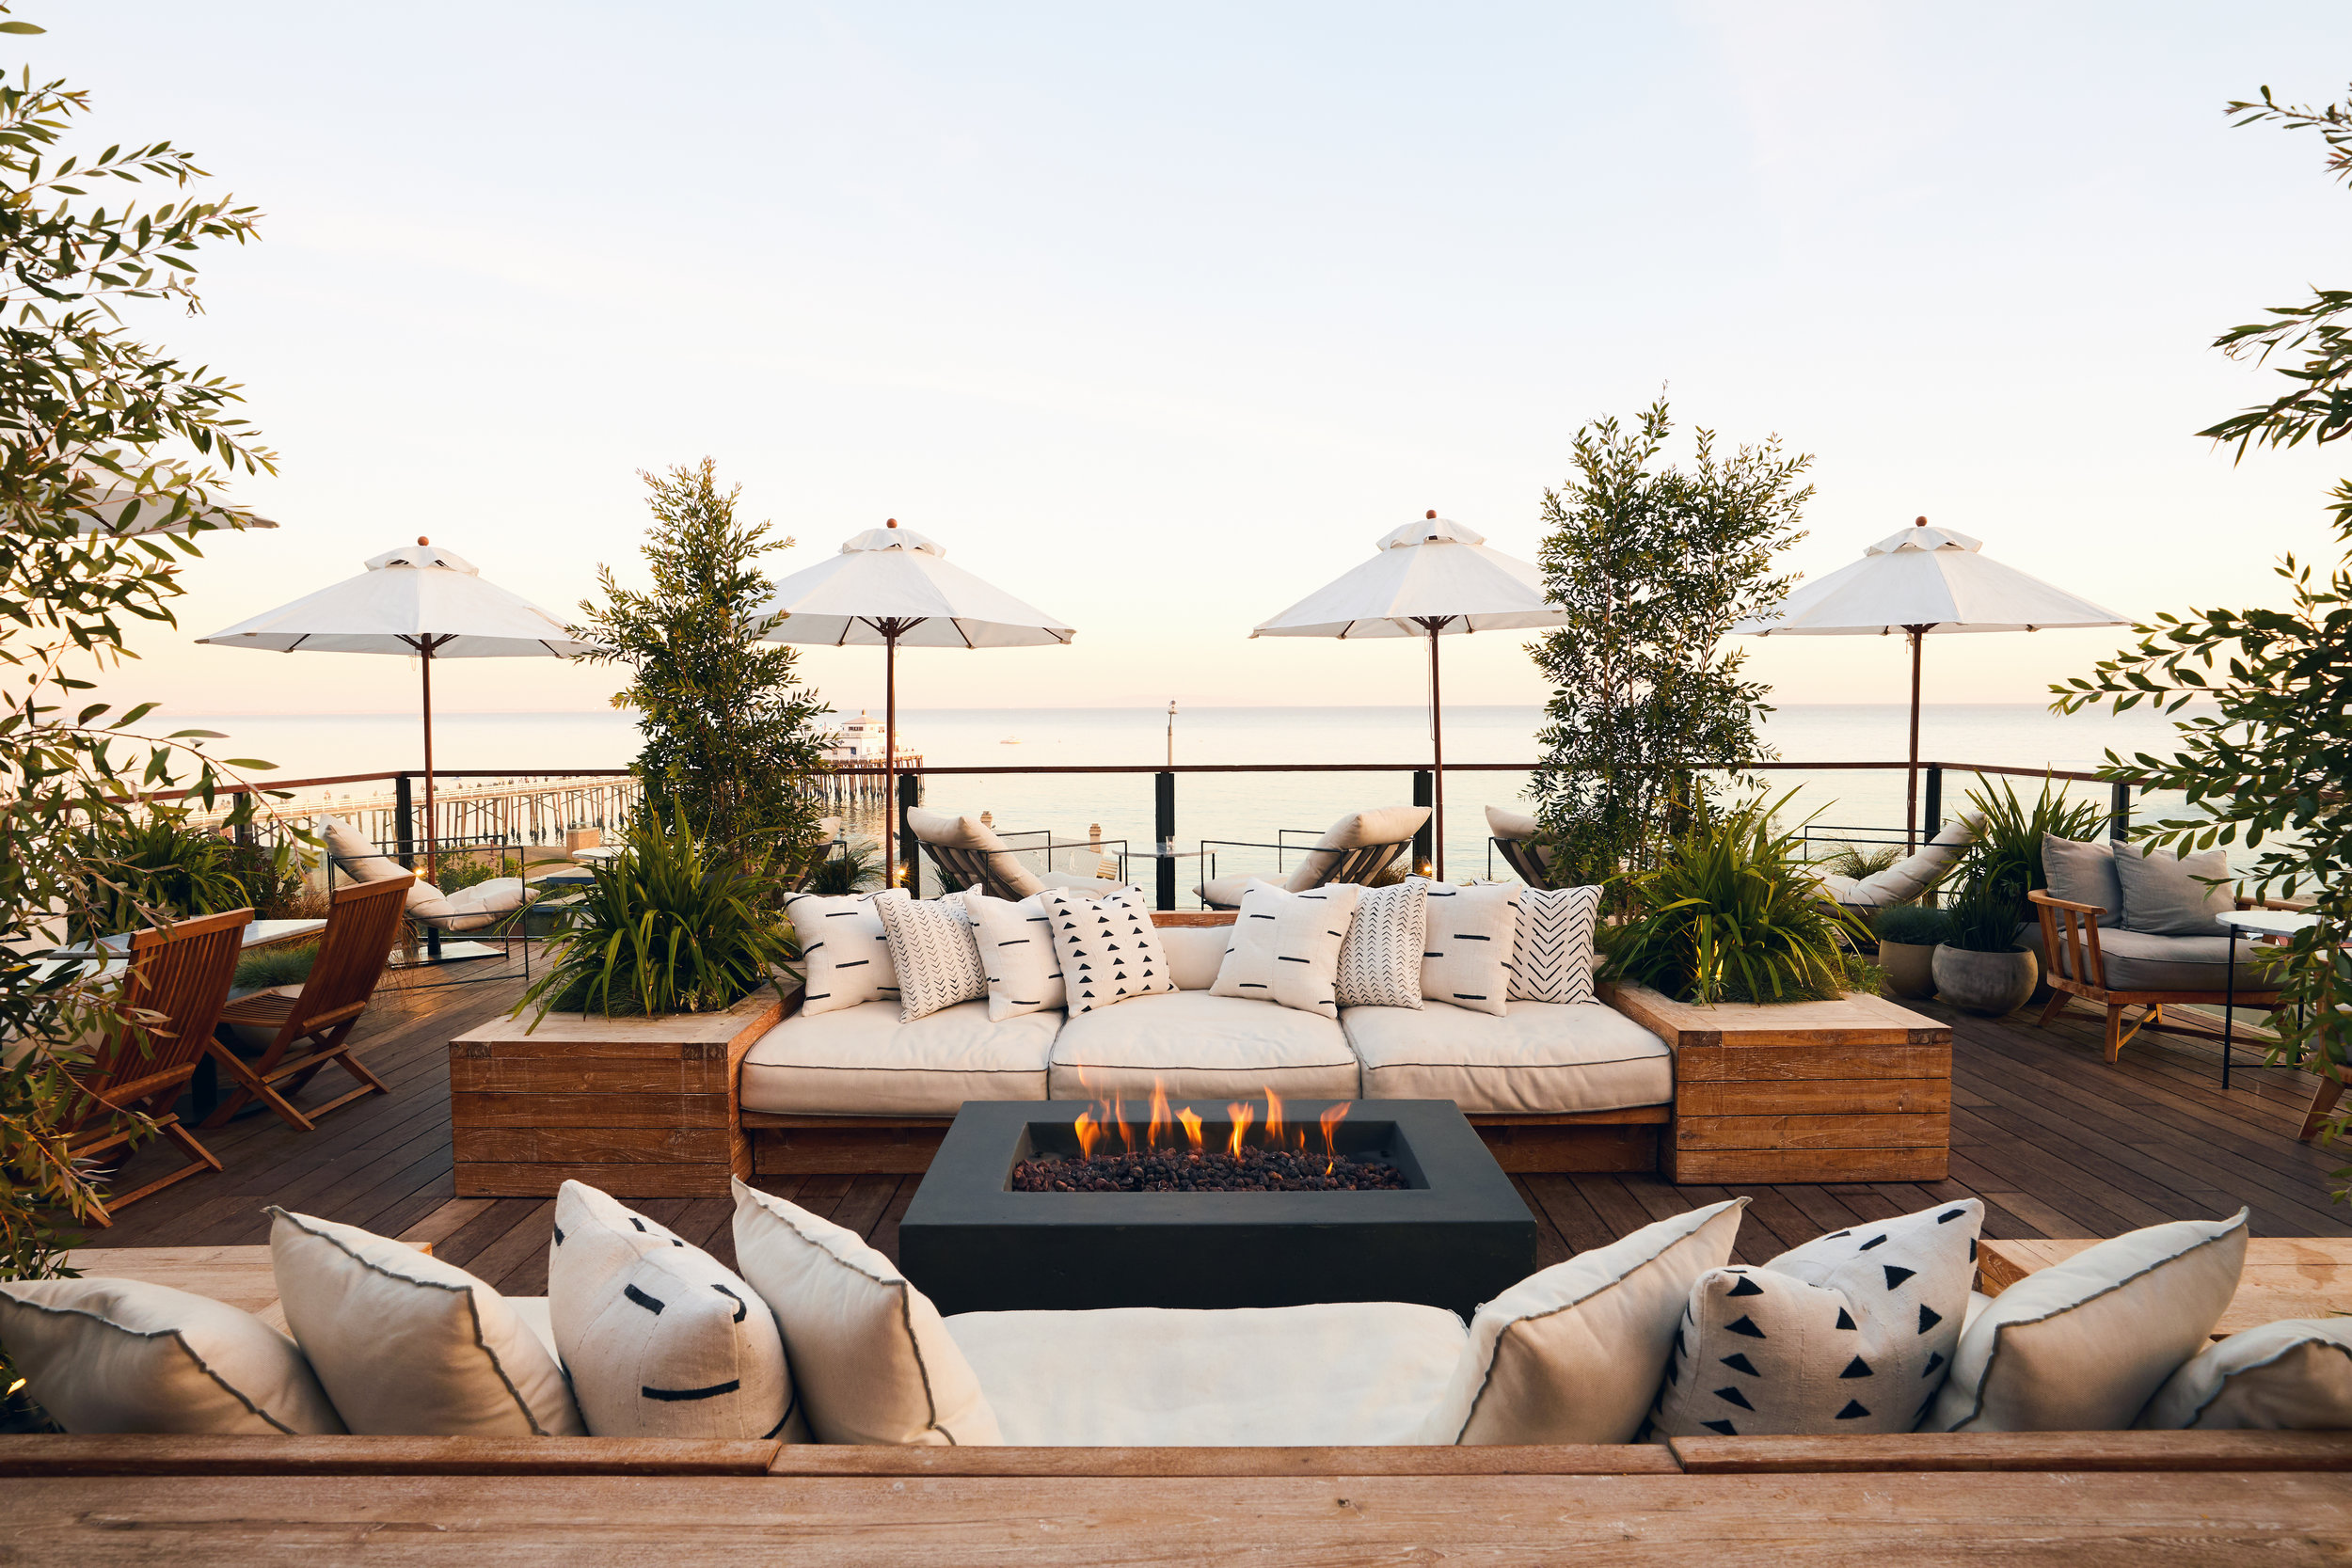 The Surfrider rooftop restaurant and bar.